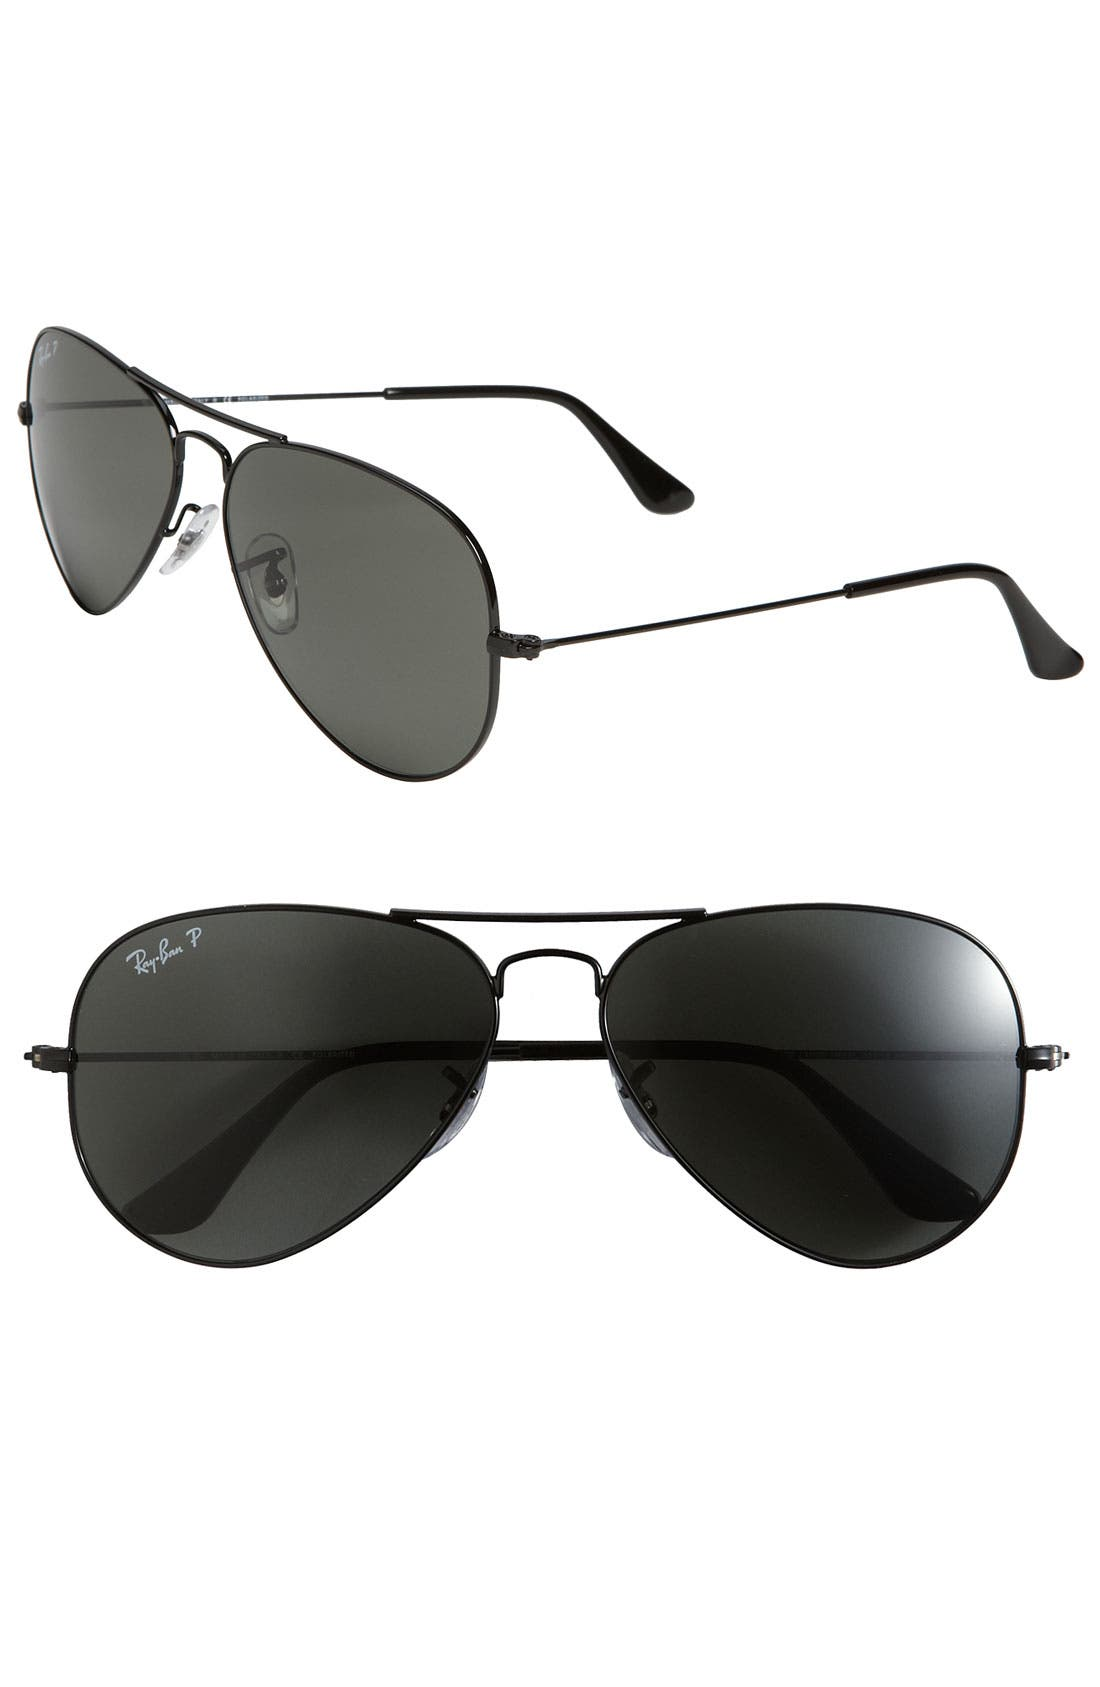 Main Image - Ray-Ban 'Polarized Original Aviator' 58mm Sunglasses